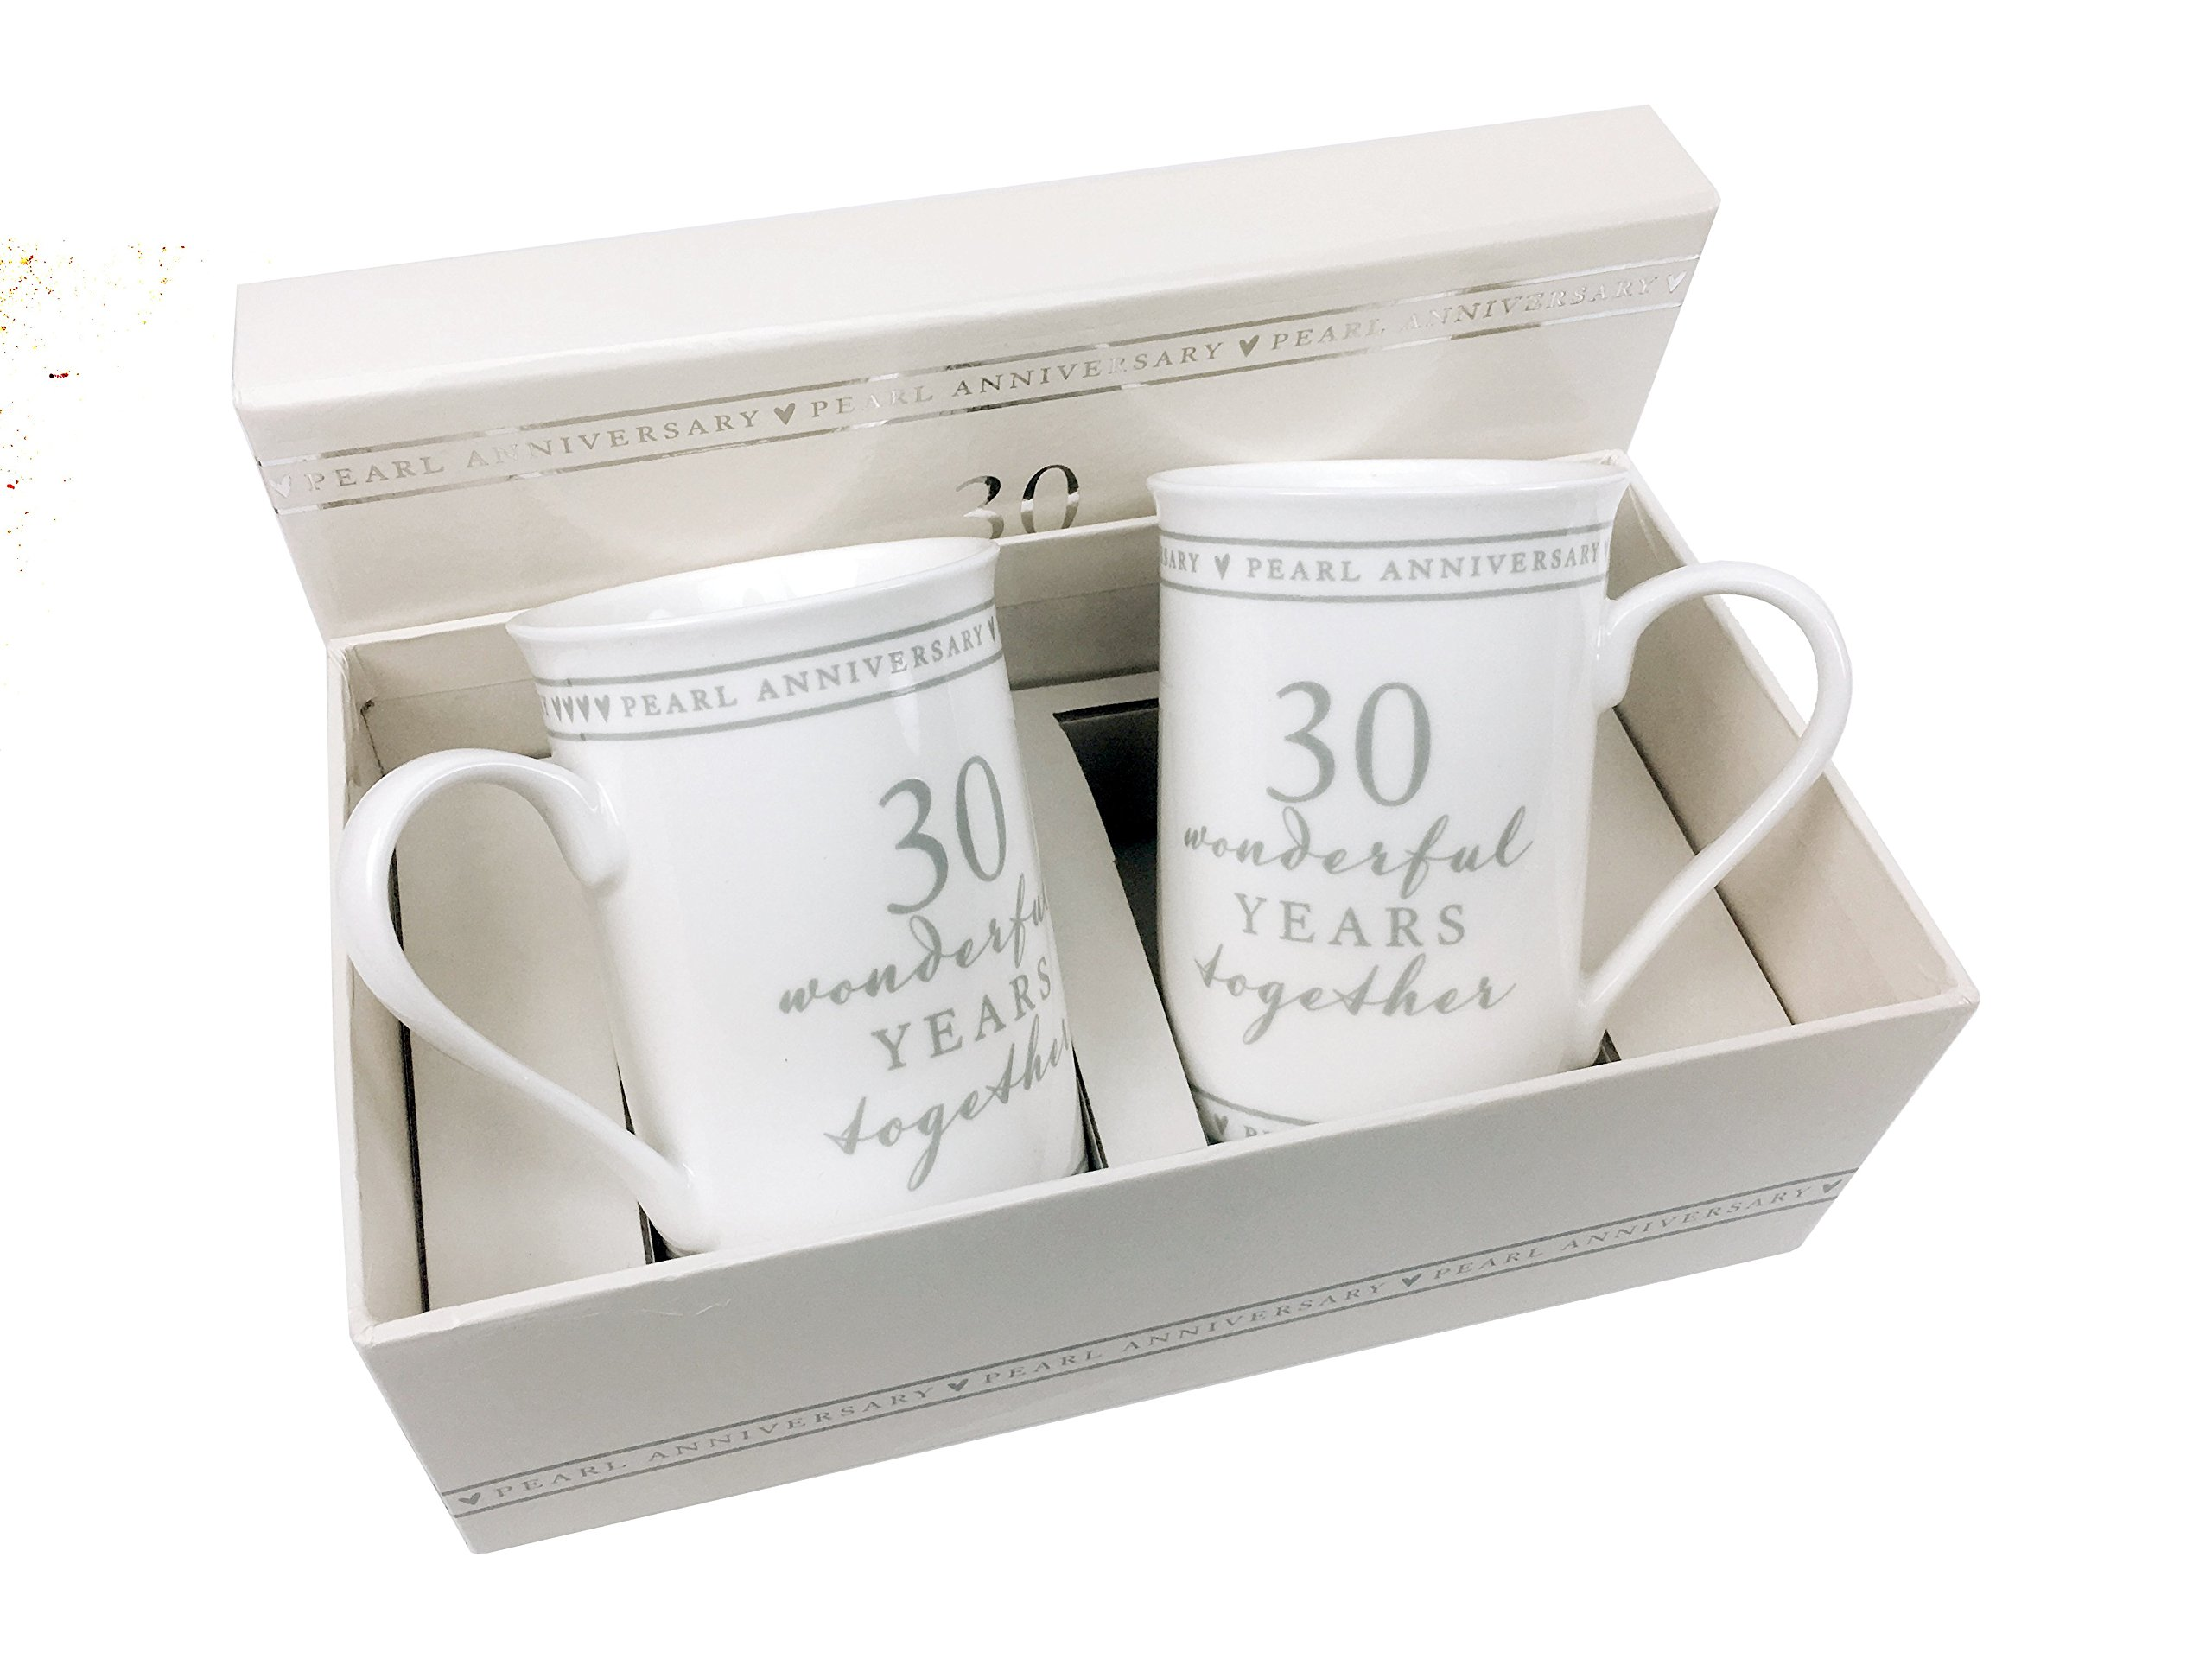 Gift For 30 Wedding Anniversary: 30th Wedding Anniversary Gifts: Amazon.co.uk